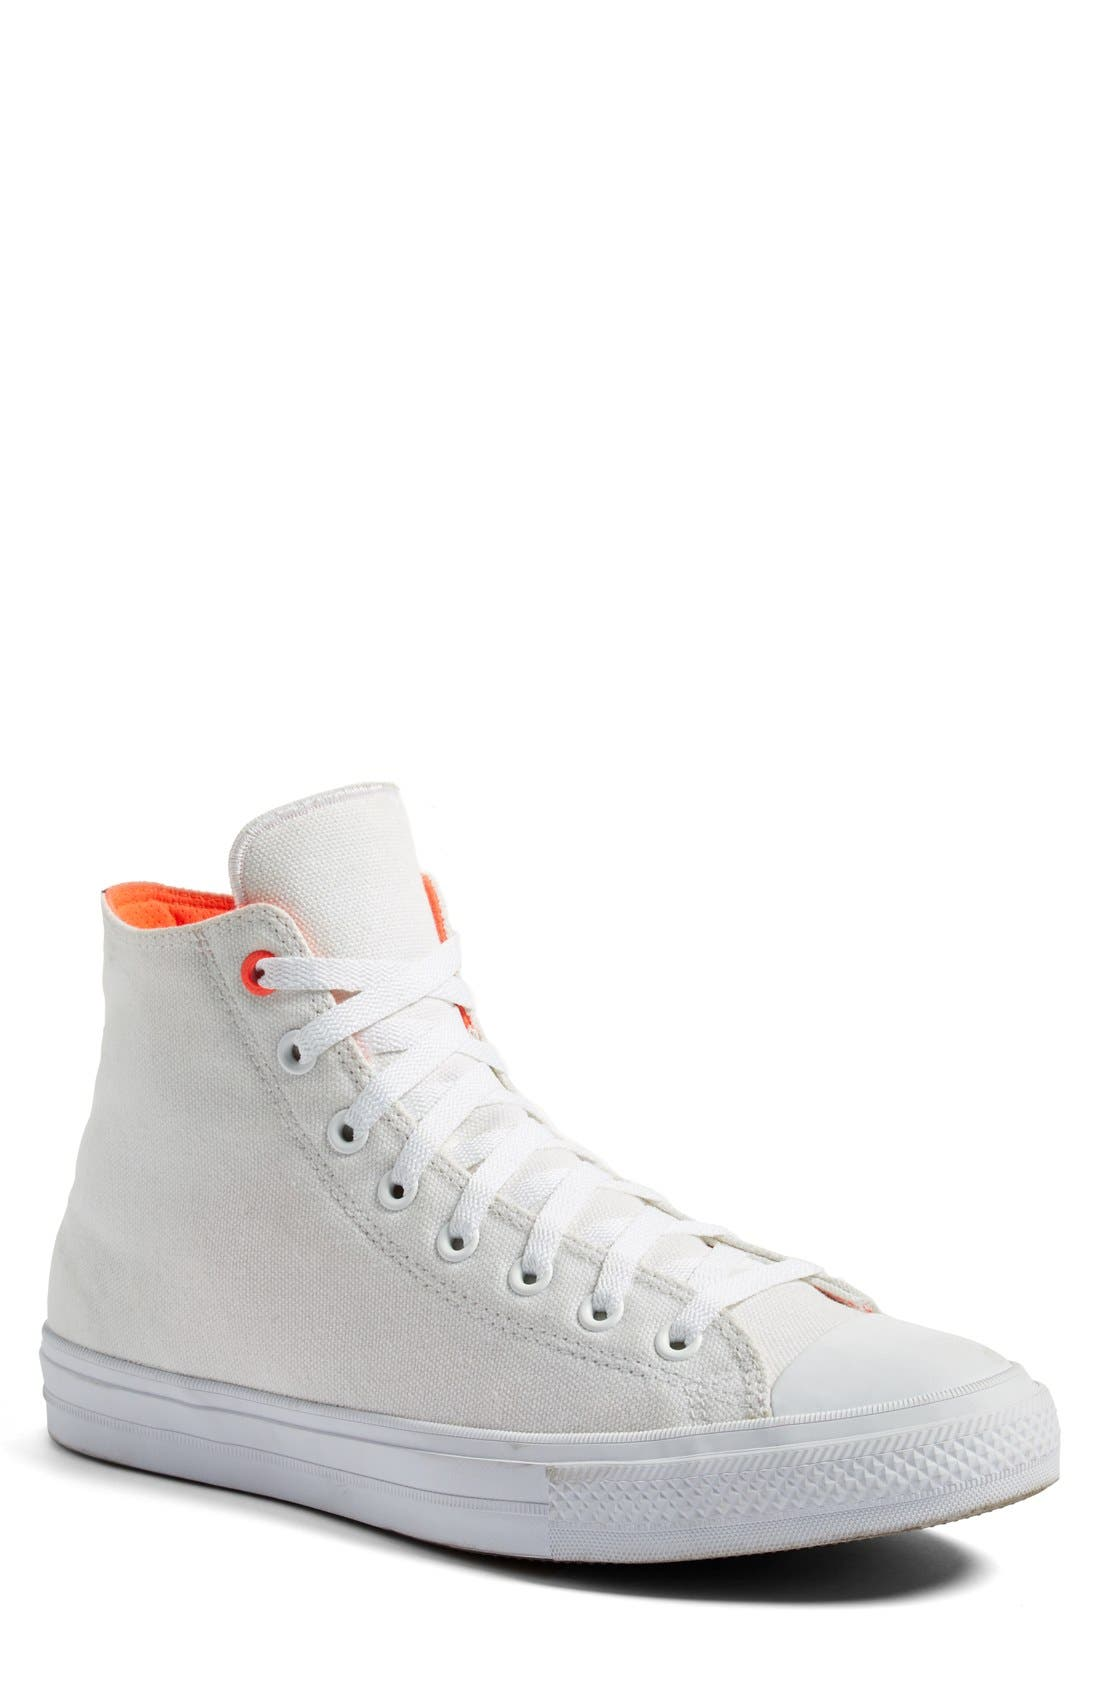 Chuck Taylor<sup>®</sup> All Star<sup>®</sup> II 'Shield' Water Repellent High Top Sneaker,                             Main thumbnail 1, color,                             102